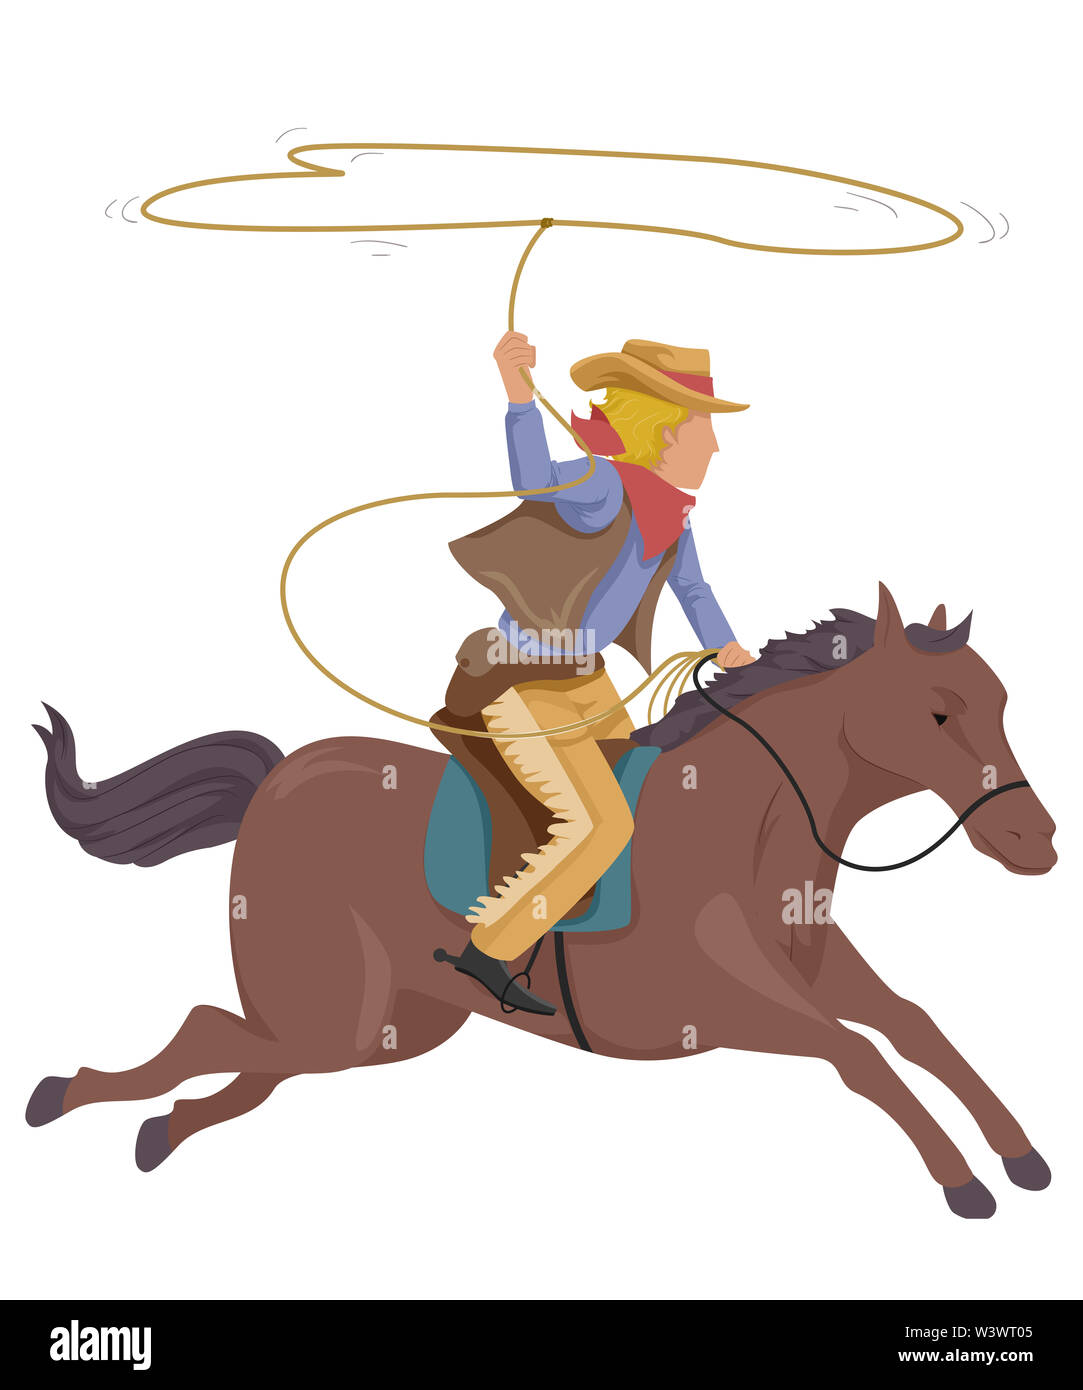 Illustration Of A Cowboy Man Riding A Horse And Throwing A Lasso Stock Photo Alamy